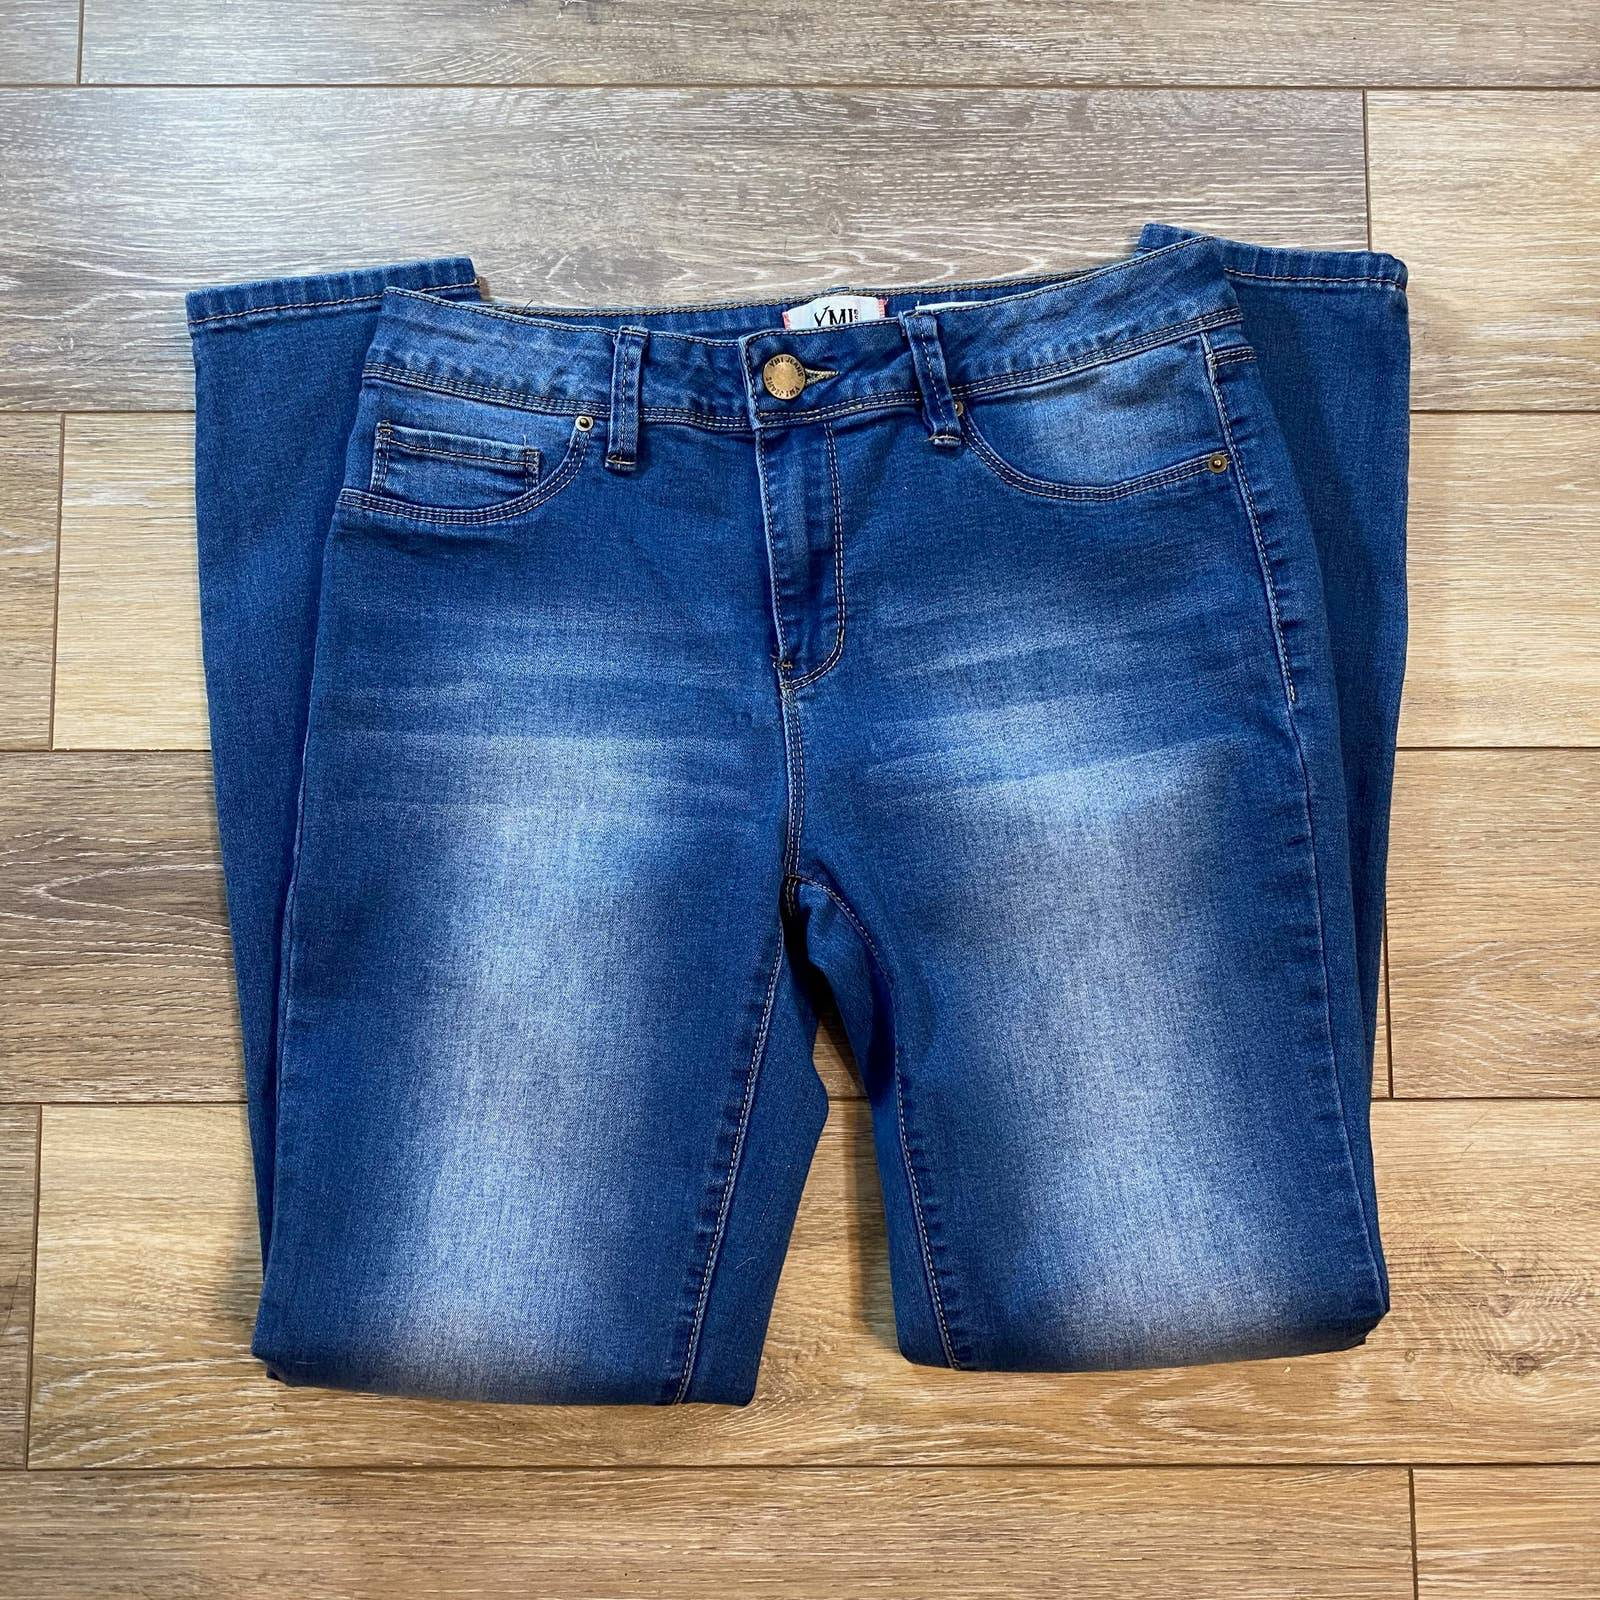 YMI | Mid Rise The Skinny | Size 11